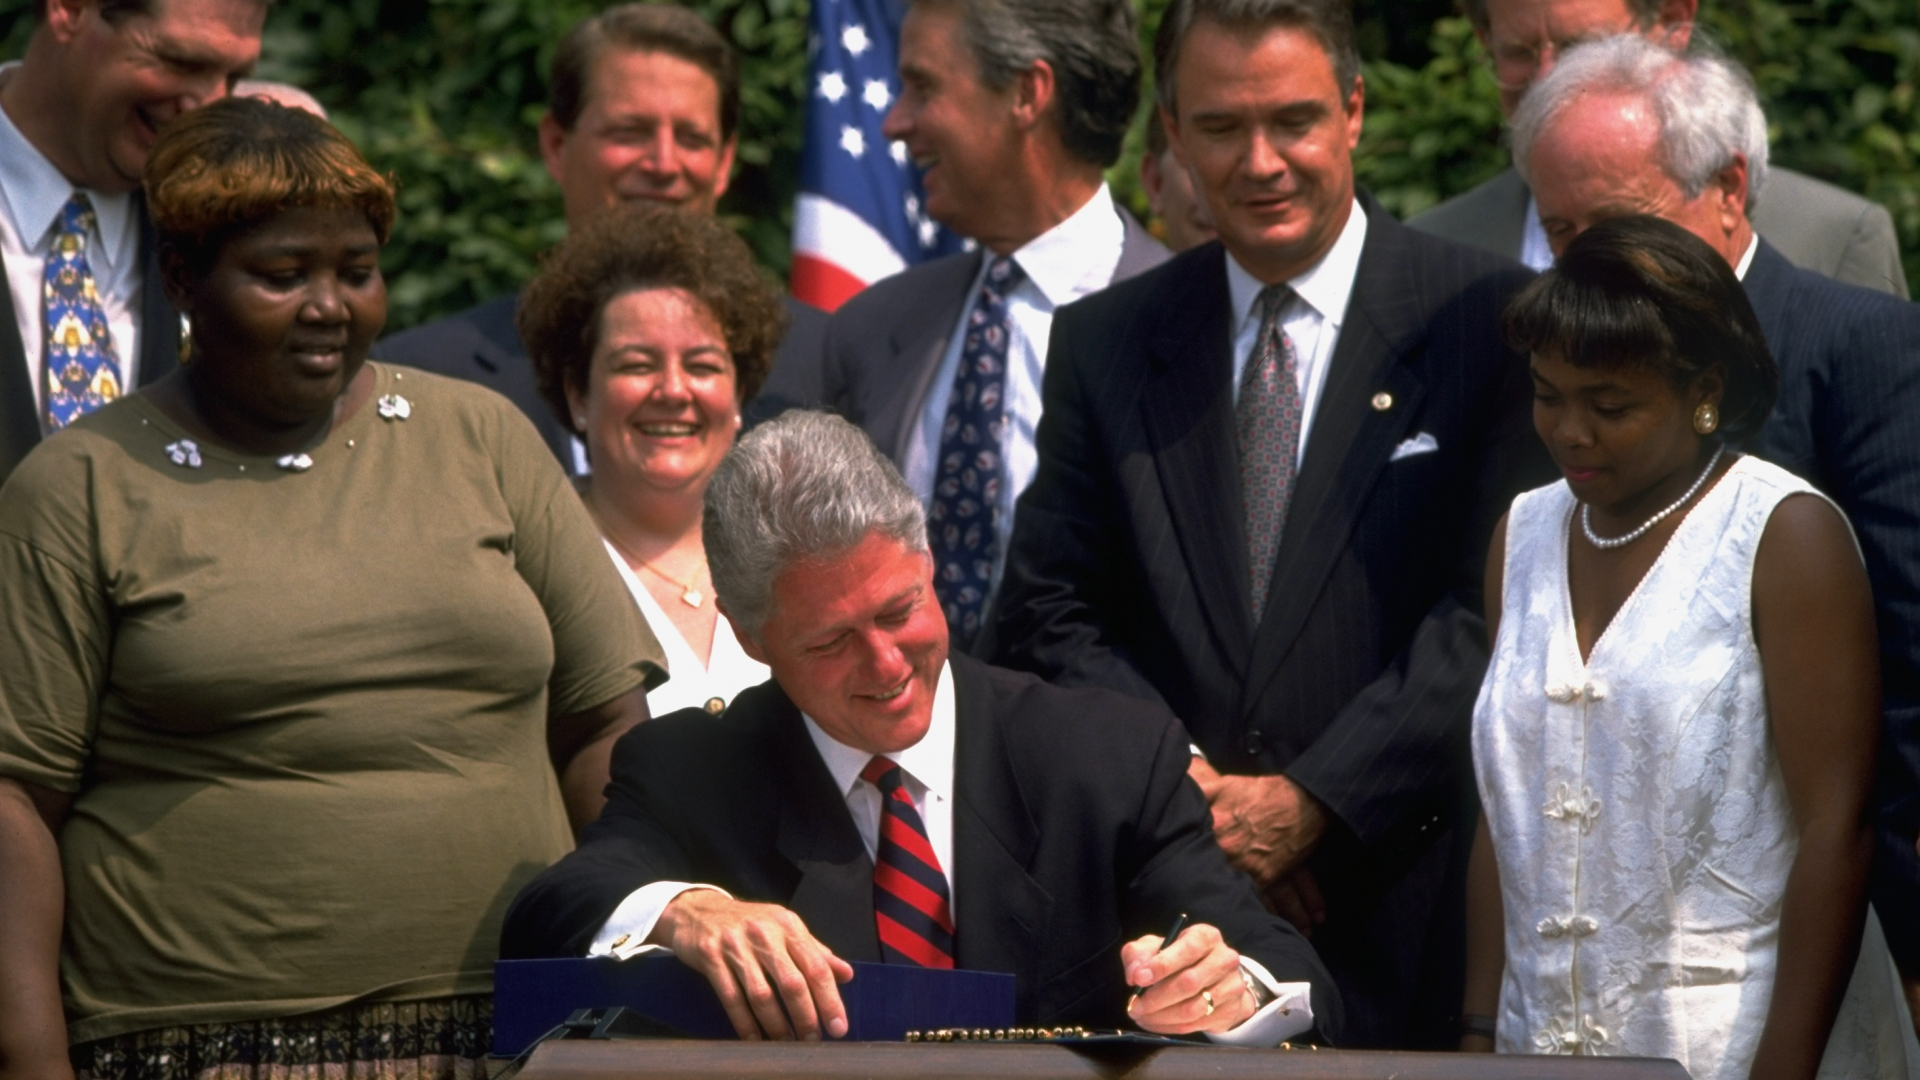 """an evaluation of president clintons 1992 election pledge to end welfare Cratic electoral fortunes among liberals  strategy, bill clinton made the pledge  to """"end welfare as we know it"""" a centerpiece of his 1992 presidential elec- tion  campaign  4 percent named it as a basis of party evaluation—even fewer than  at."""